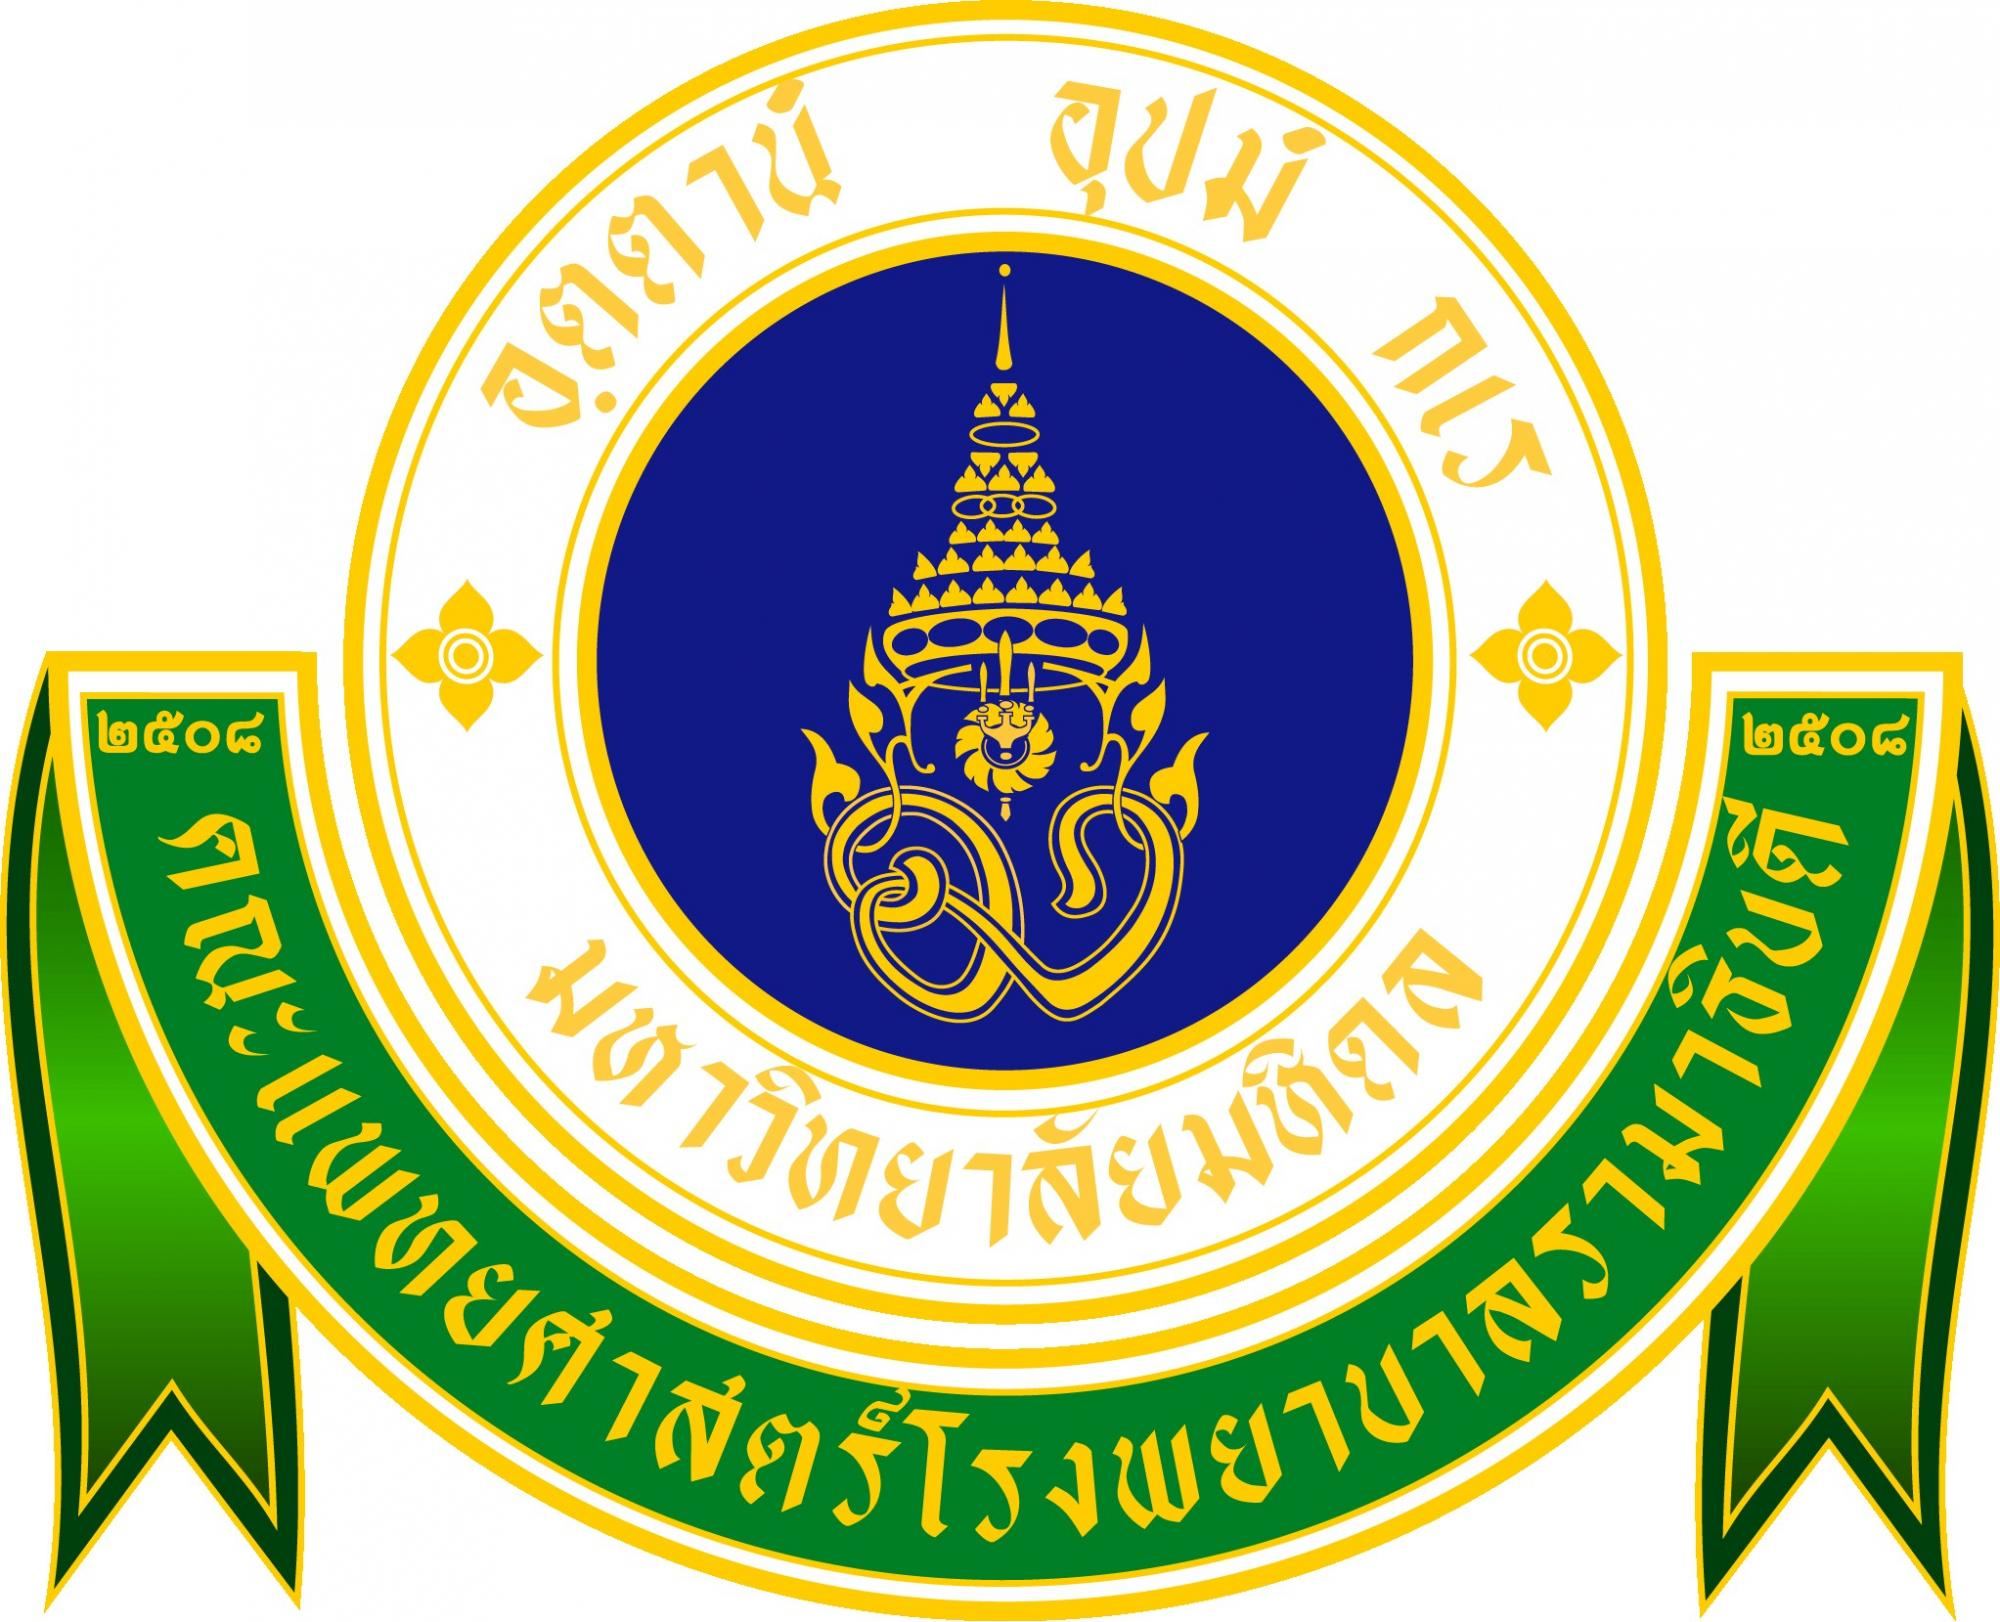 https://med.mahidol.ac.th/meded/